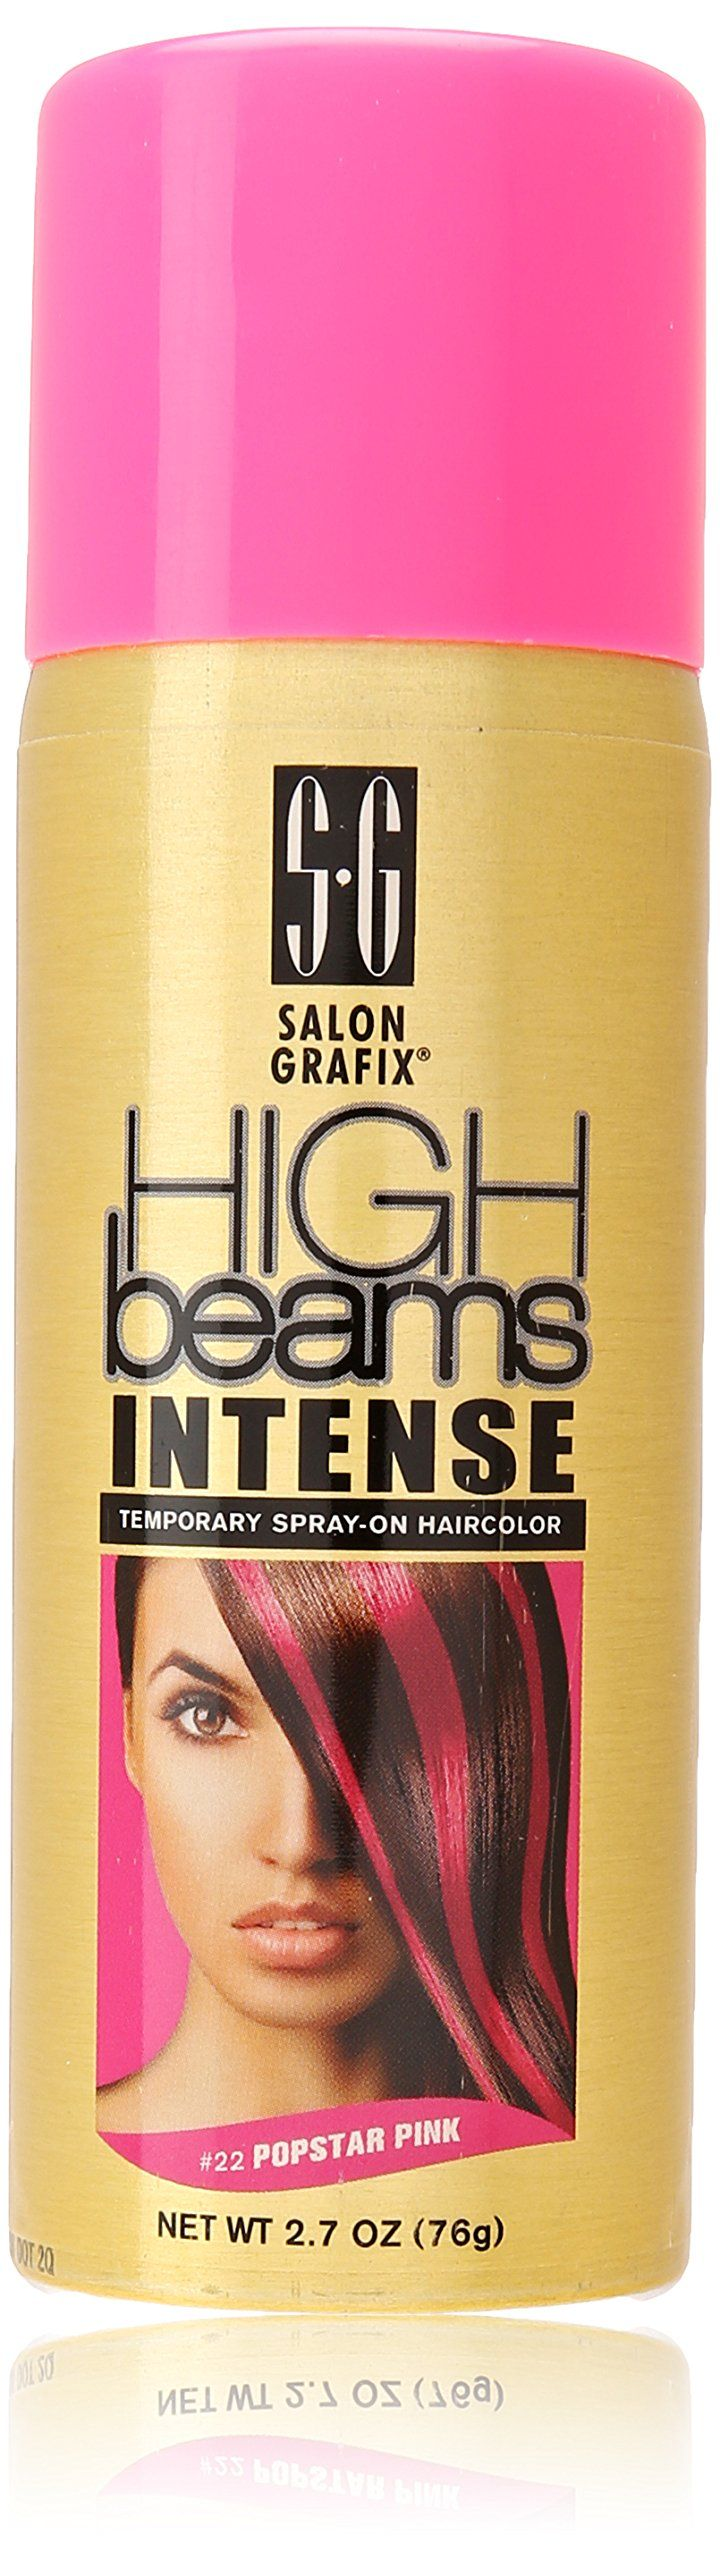 high beams Intense Temporary Spray on Hair Color, Popstar Pink #43, 2.7 Ounce. Add pizzazz to any hair design. It's the perfect tool for adding subtle color highlights or for making a bold statement. High beams intense washes away with just one shampooing, with no risk of damaging your hair color; Get ready to turn on the creativity with high beams intense temporary spray-on hair color.